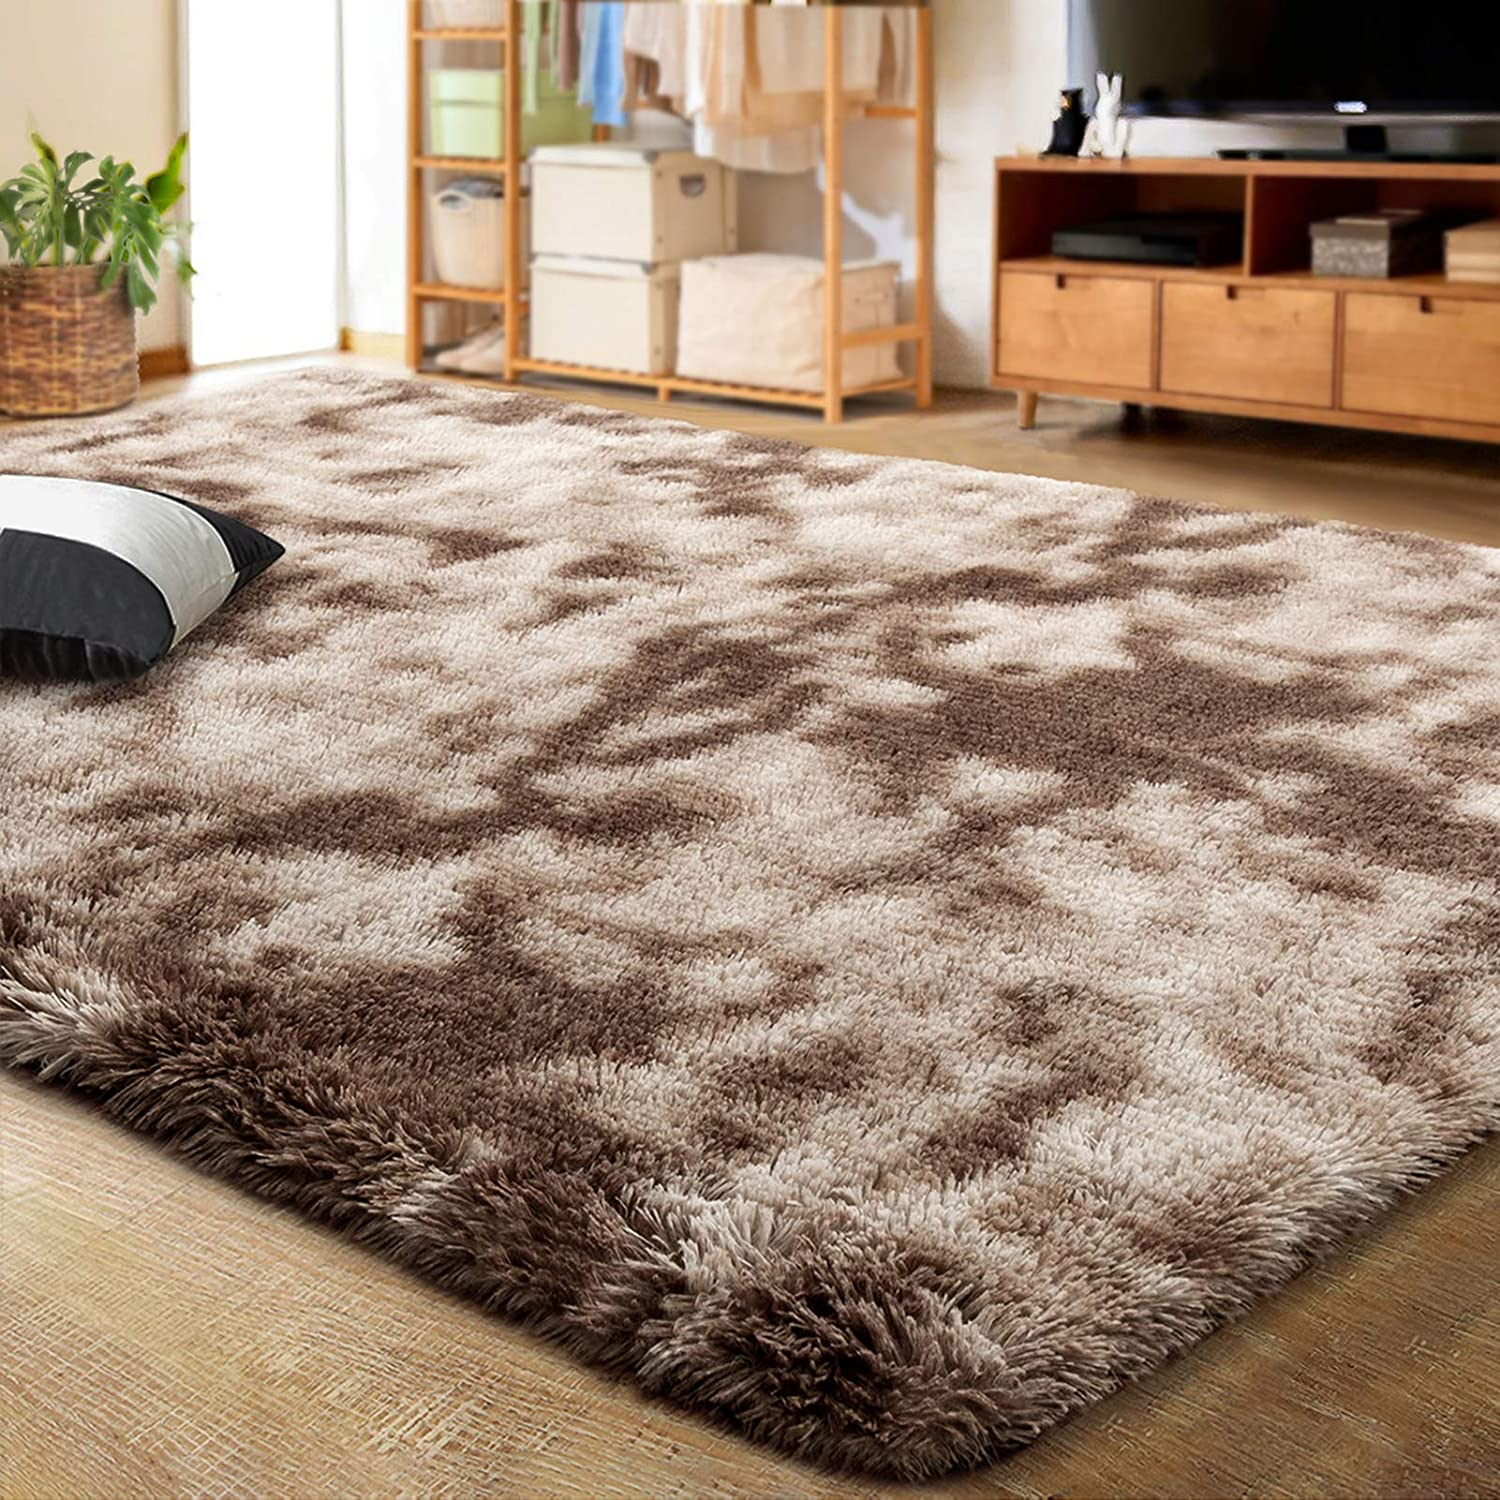 Amazon Com Lochas Luxury Velvet Shag Area Rug Modern Indoor Fluffy Rugs Extra Comfy And Soft Carpet Abstract Accent Rugs For Bedroom Living Room Dorm Home Girls Kids 4x6 Feet Brown Ivory Kitchen